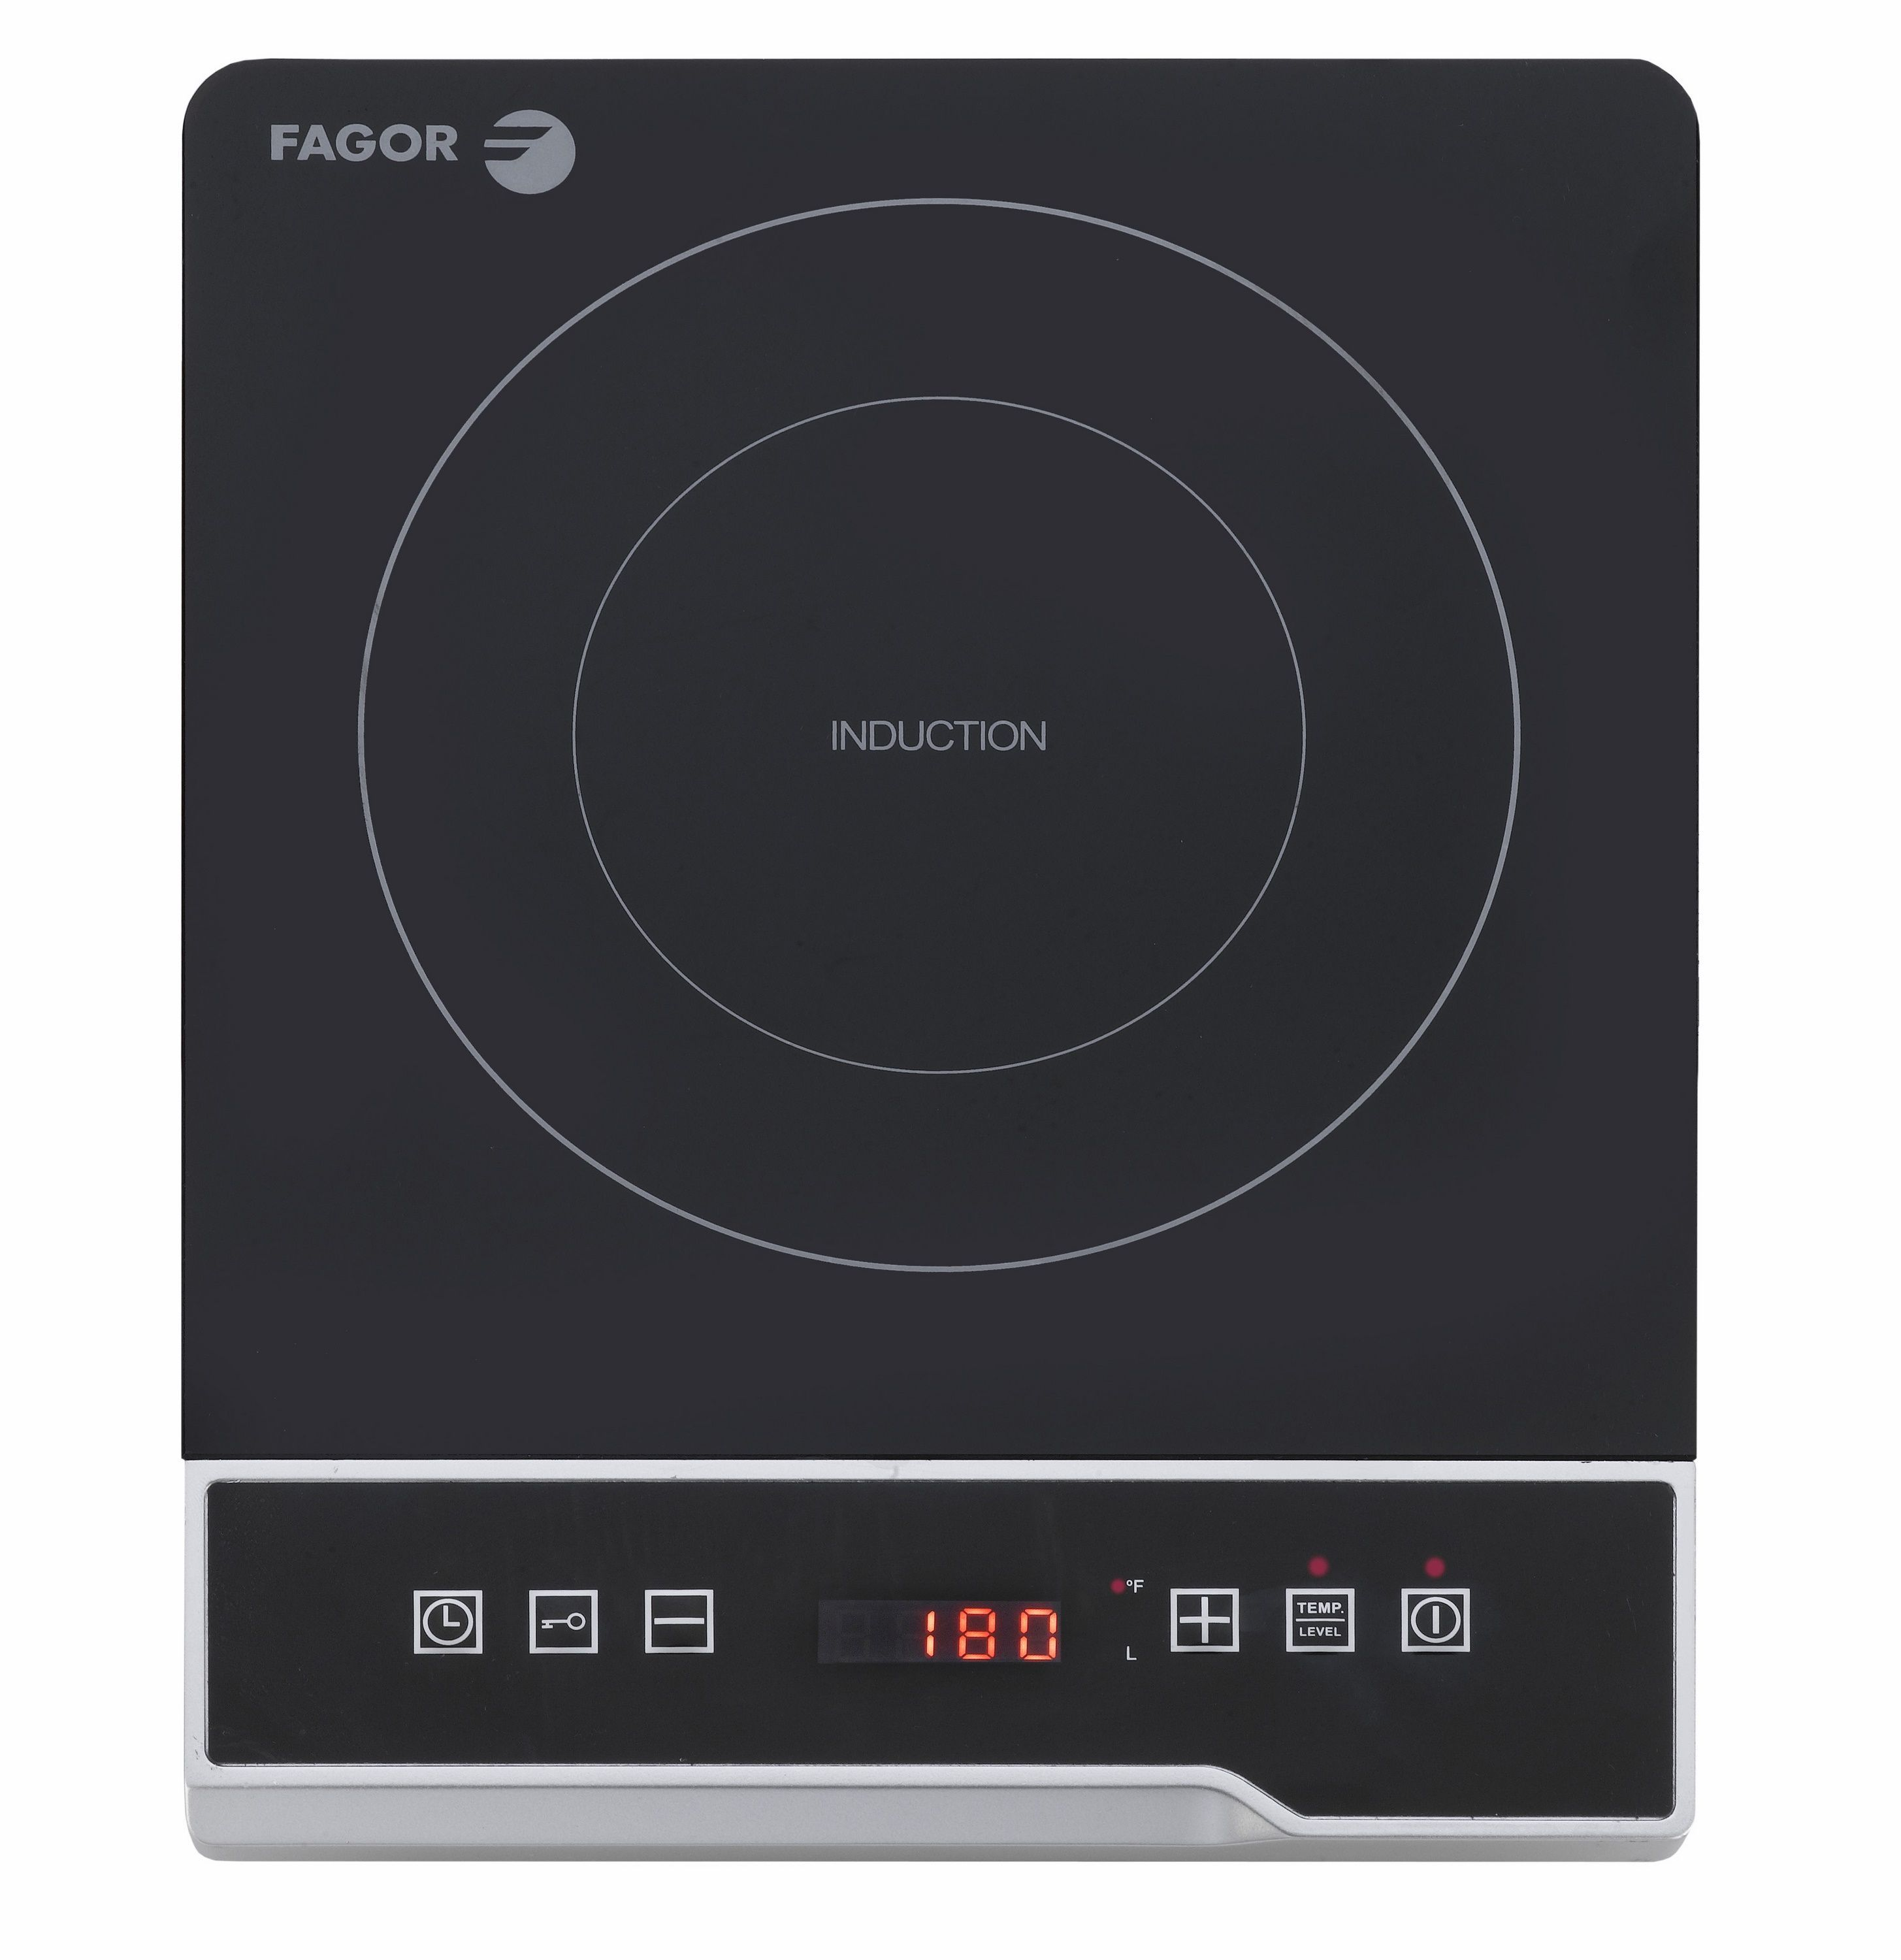 Fagor UCook Induction Cooktop, Black